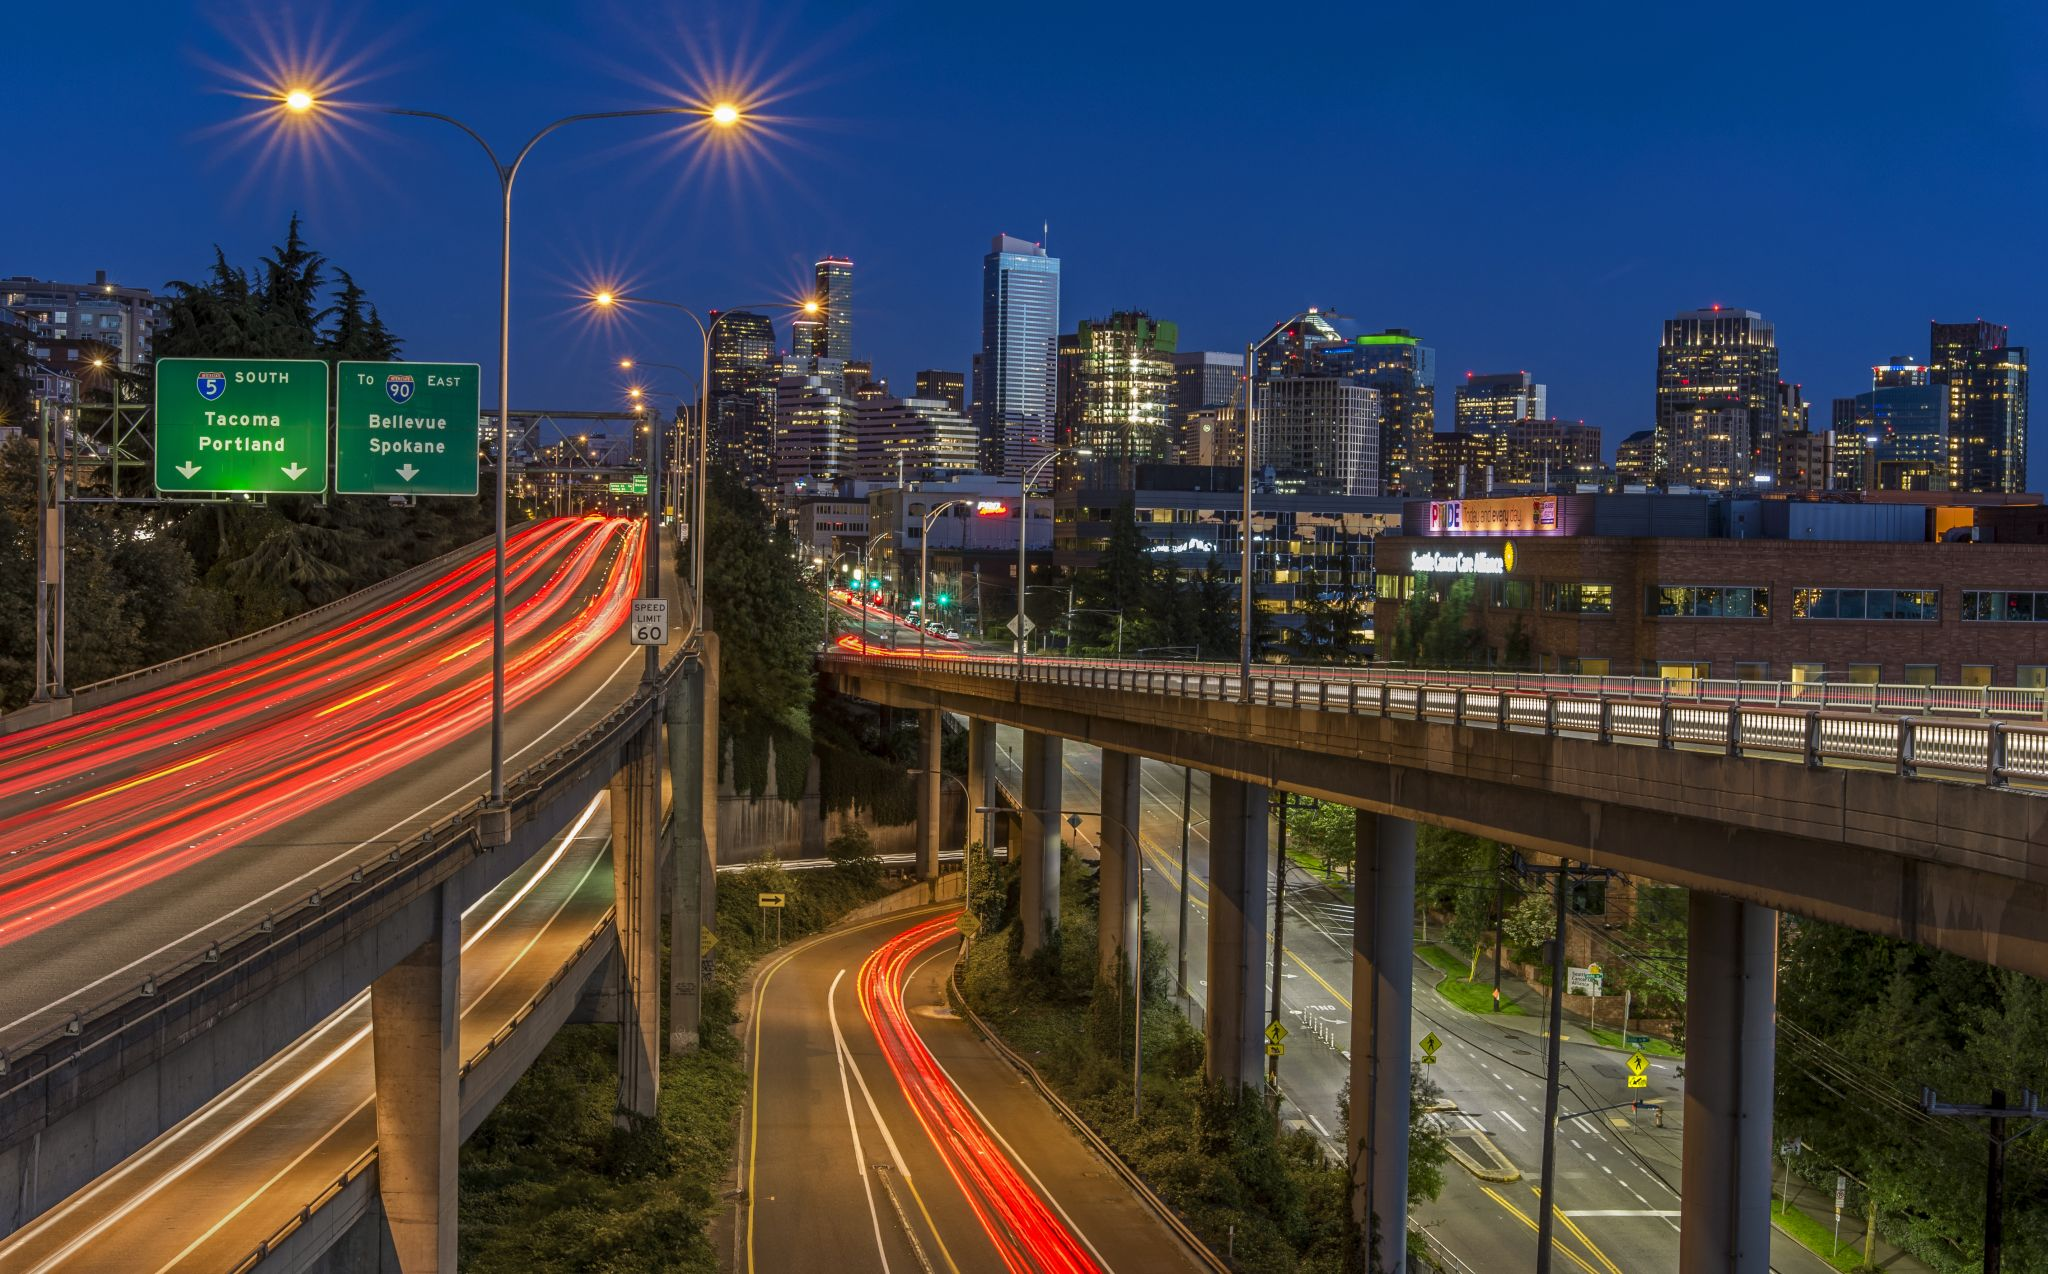 Lakeview Blvd Overpass, USA